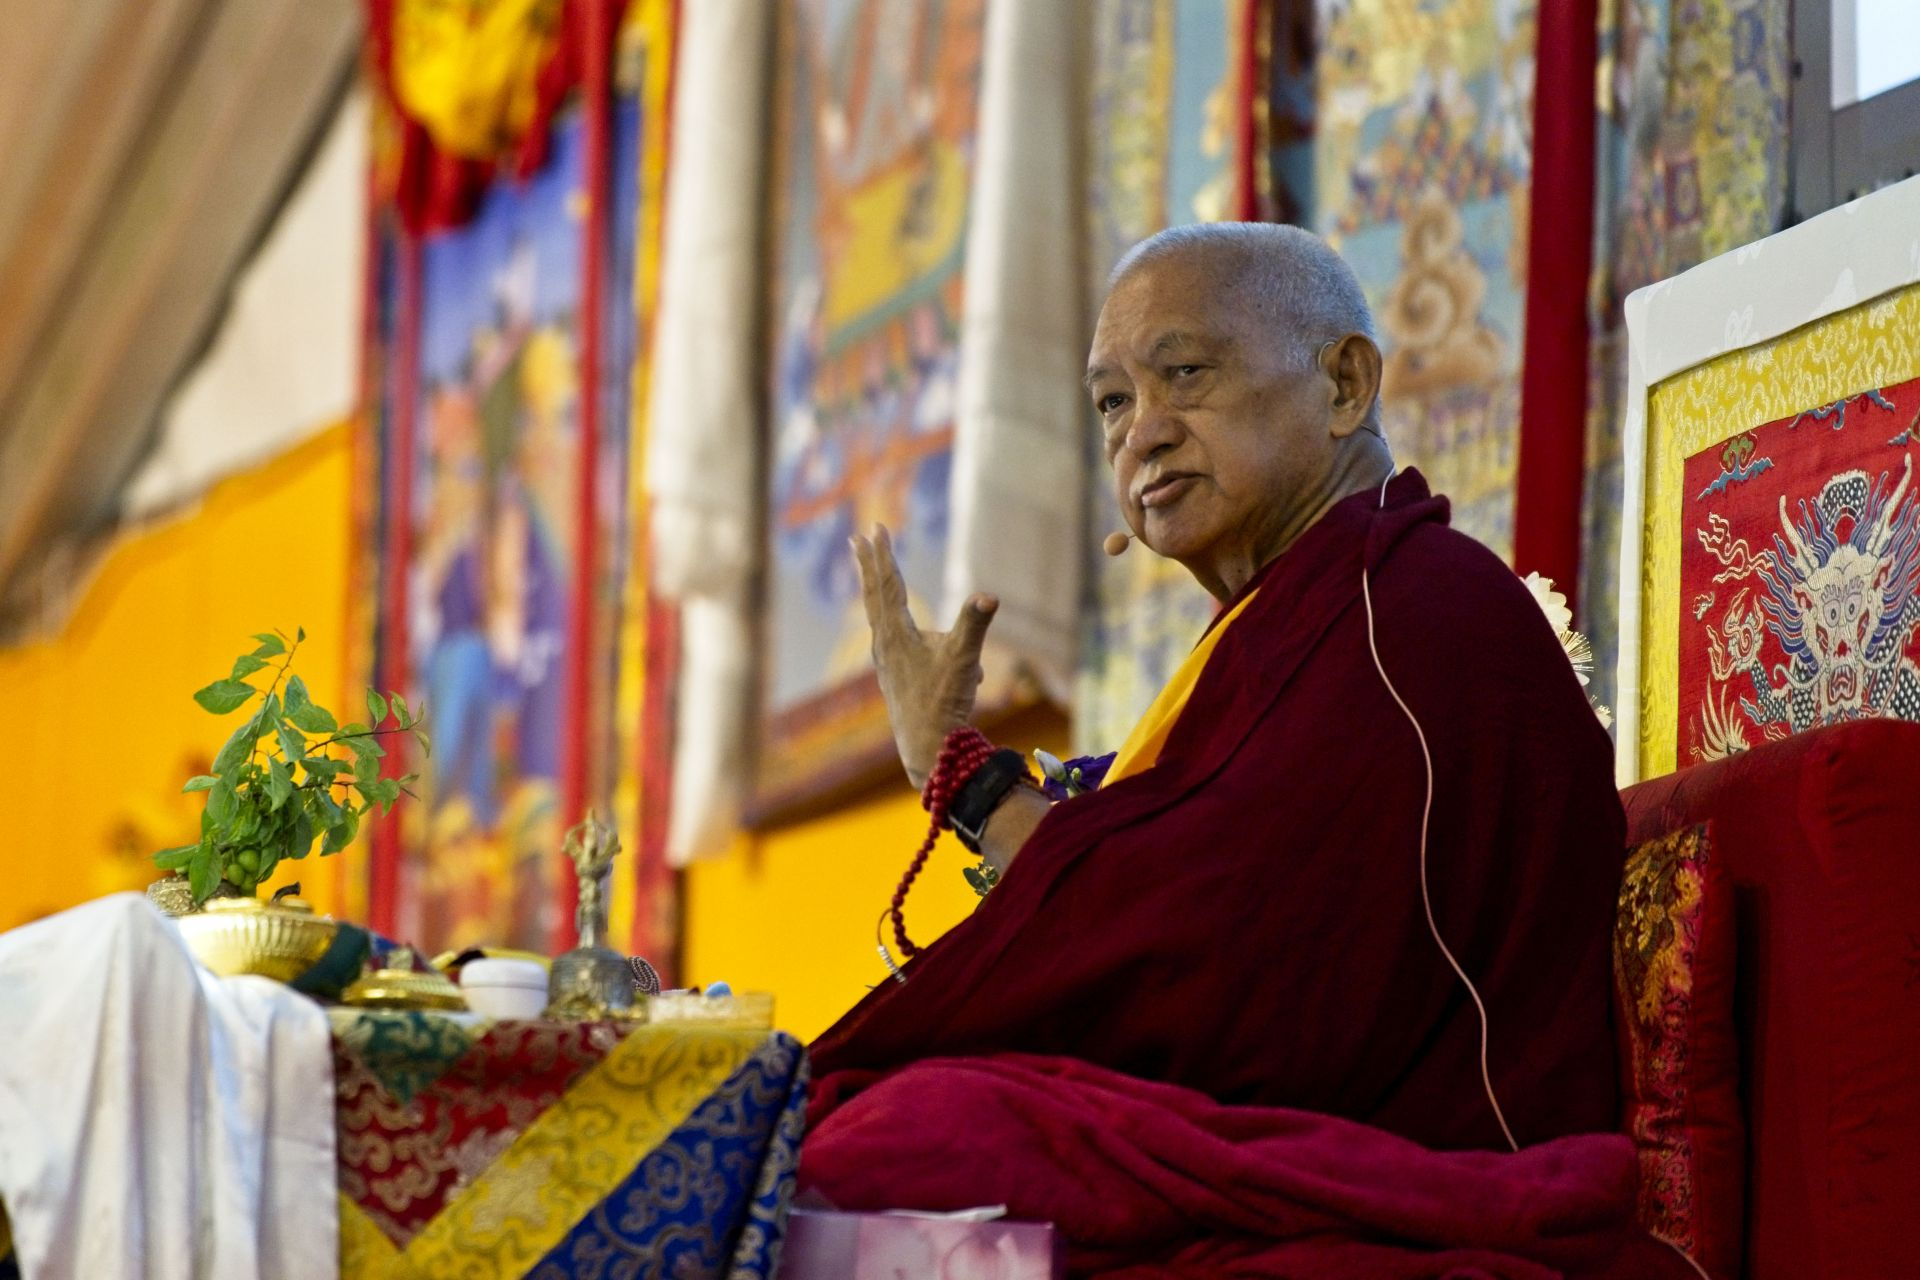 'It Is All There in Lama Chopa'